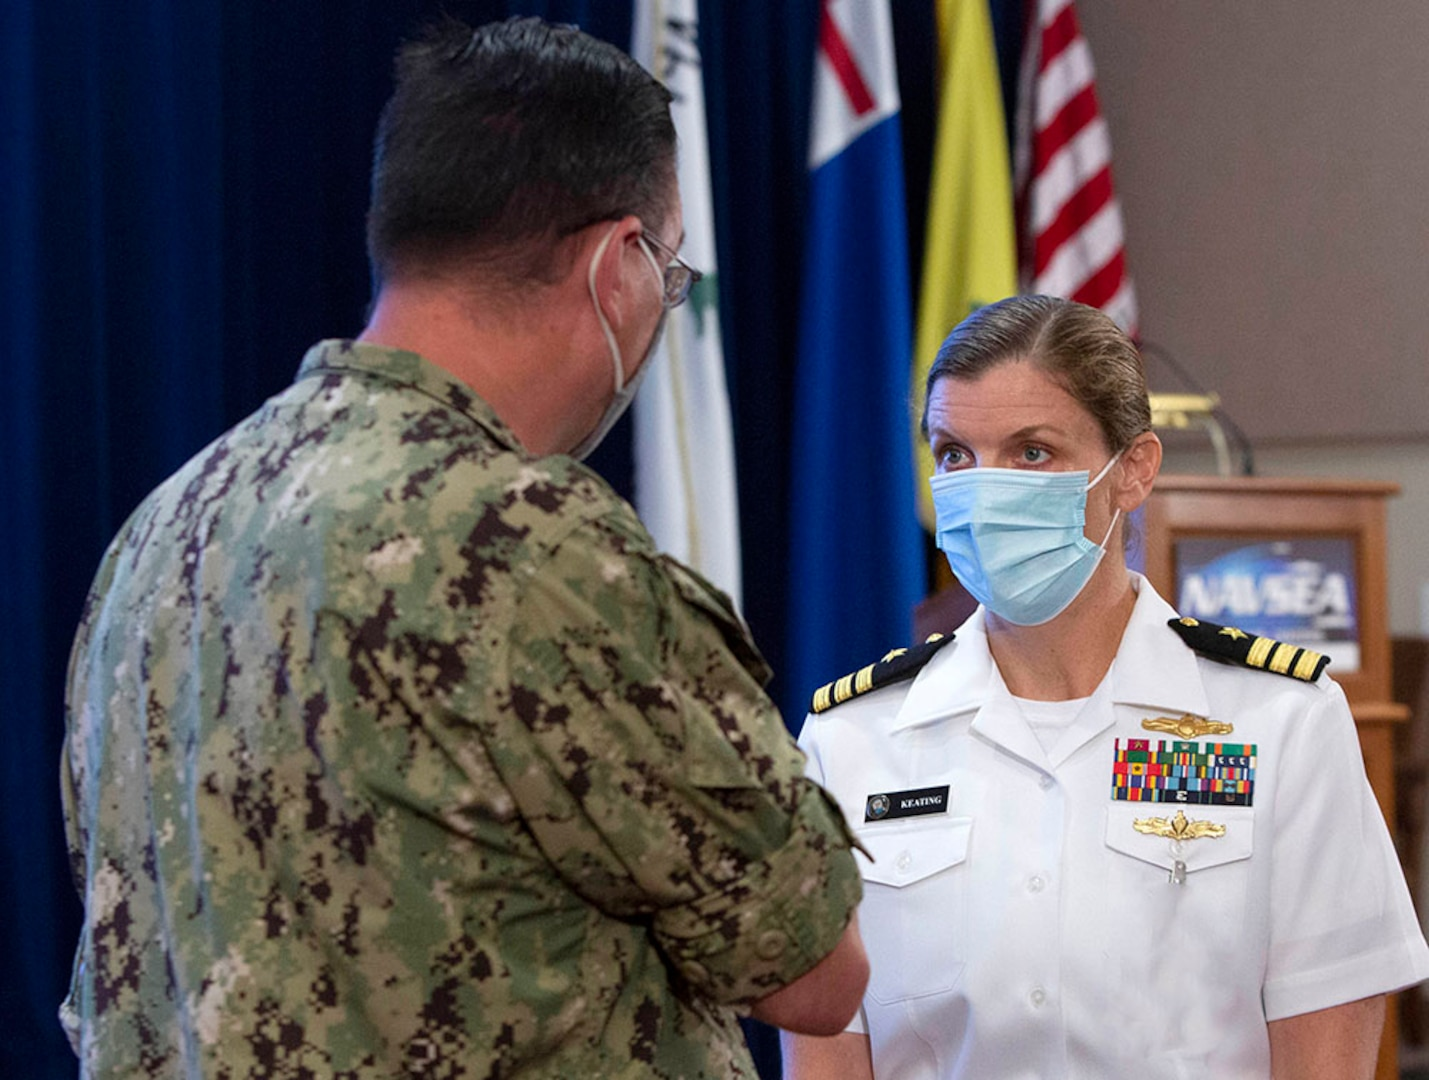 Cmdr. Cindy Keating discusses key elements of leadership during visit to NUWC Division Newport